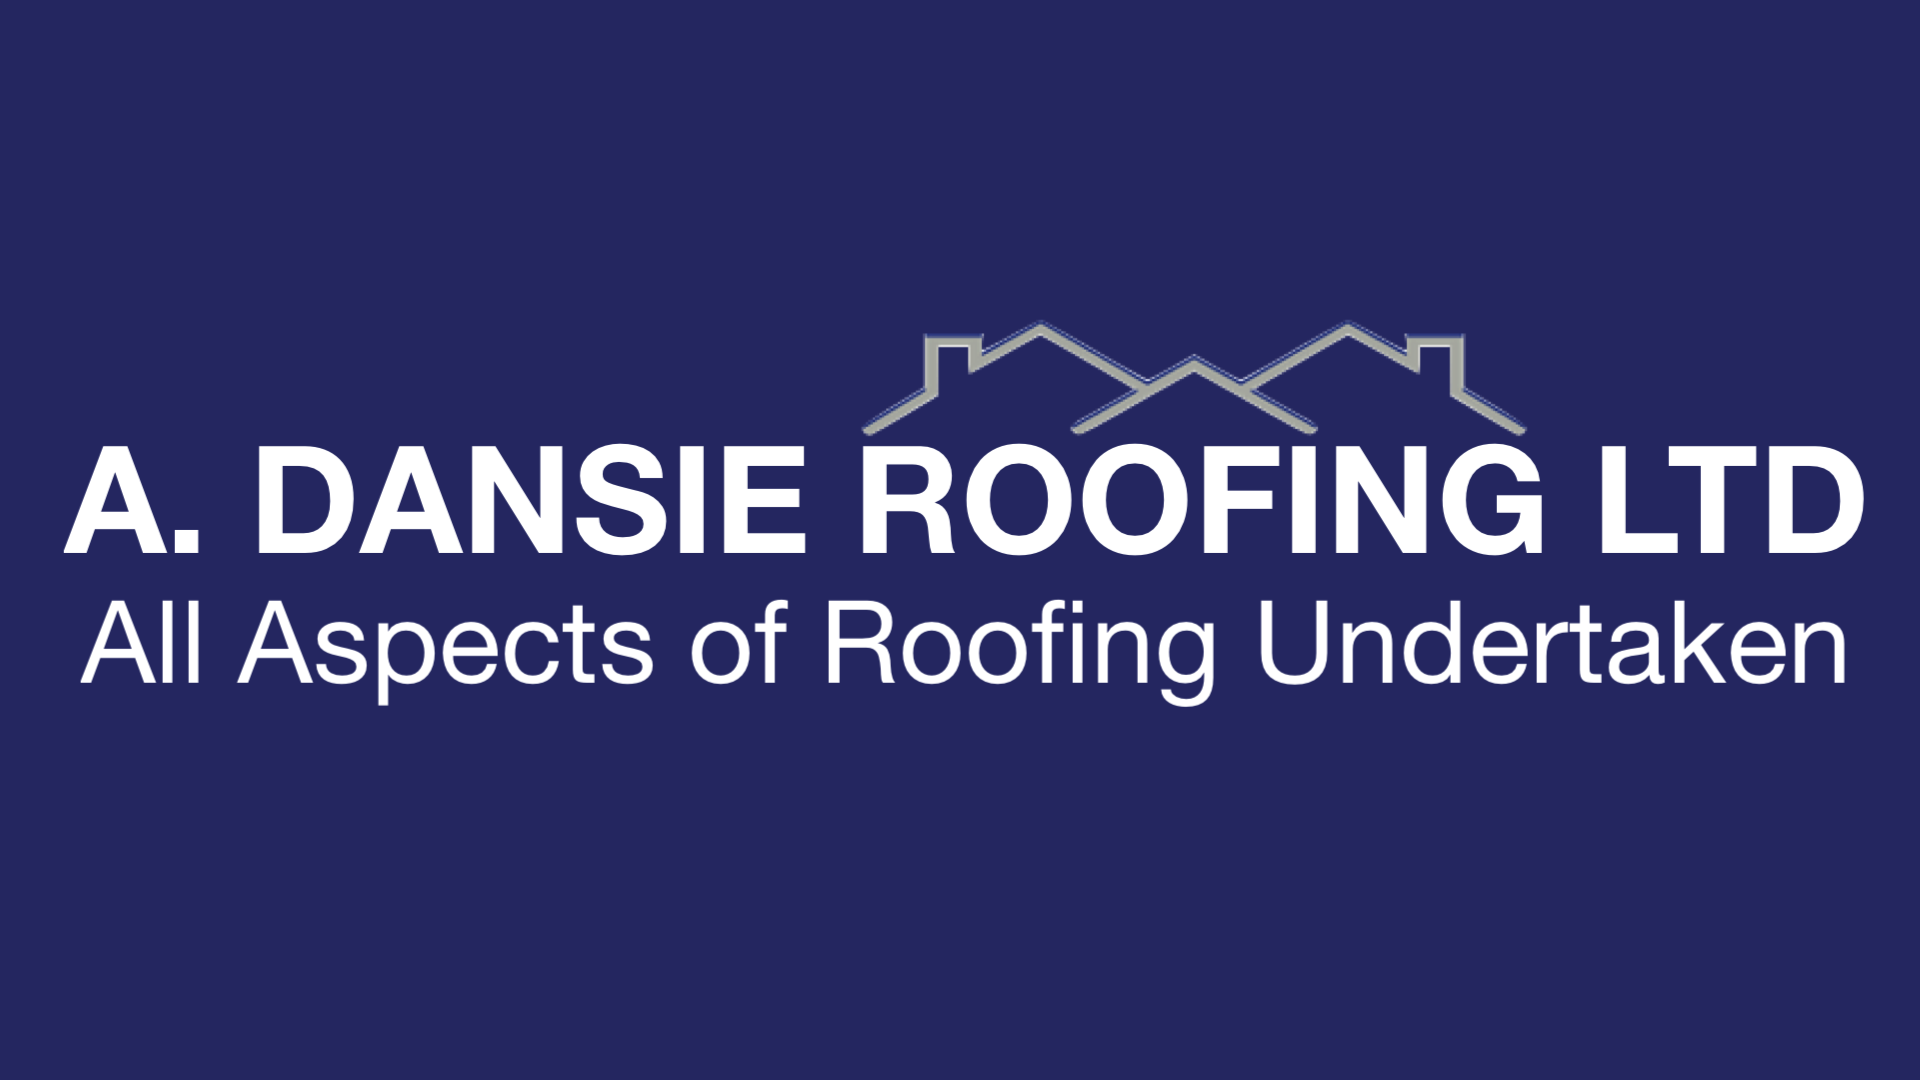 A. Dansie Roofing Ltd | Roofing Contractor | Surrey | West Sussex | Redhill | Reigate | Dorking | Horsham | Sutton | Epsom | East Grinstead | Crawley | Oxted | Merstham